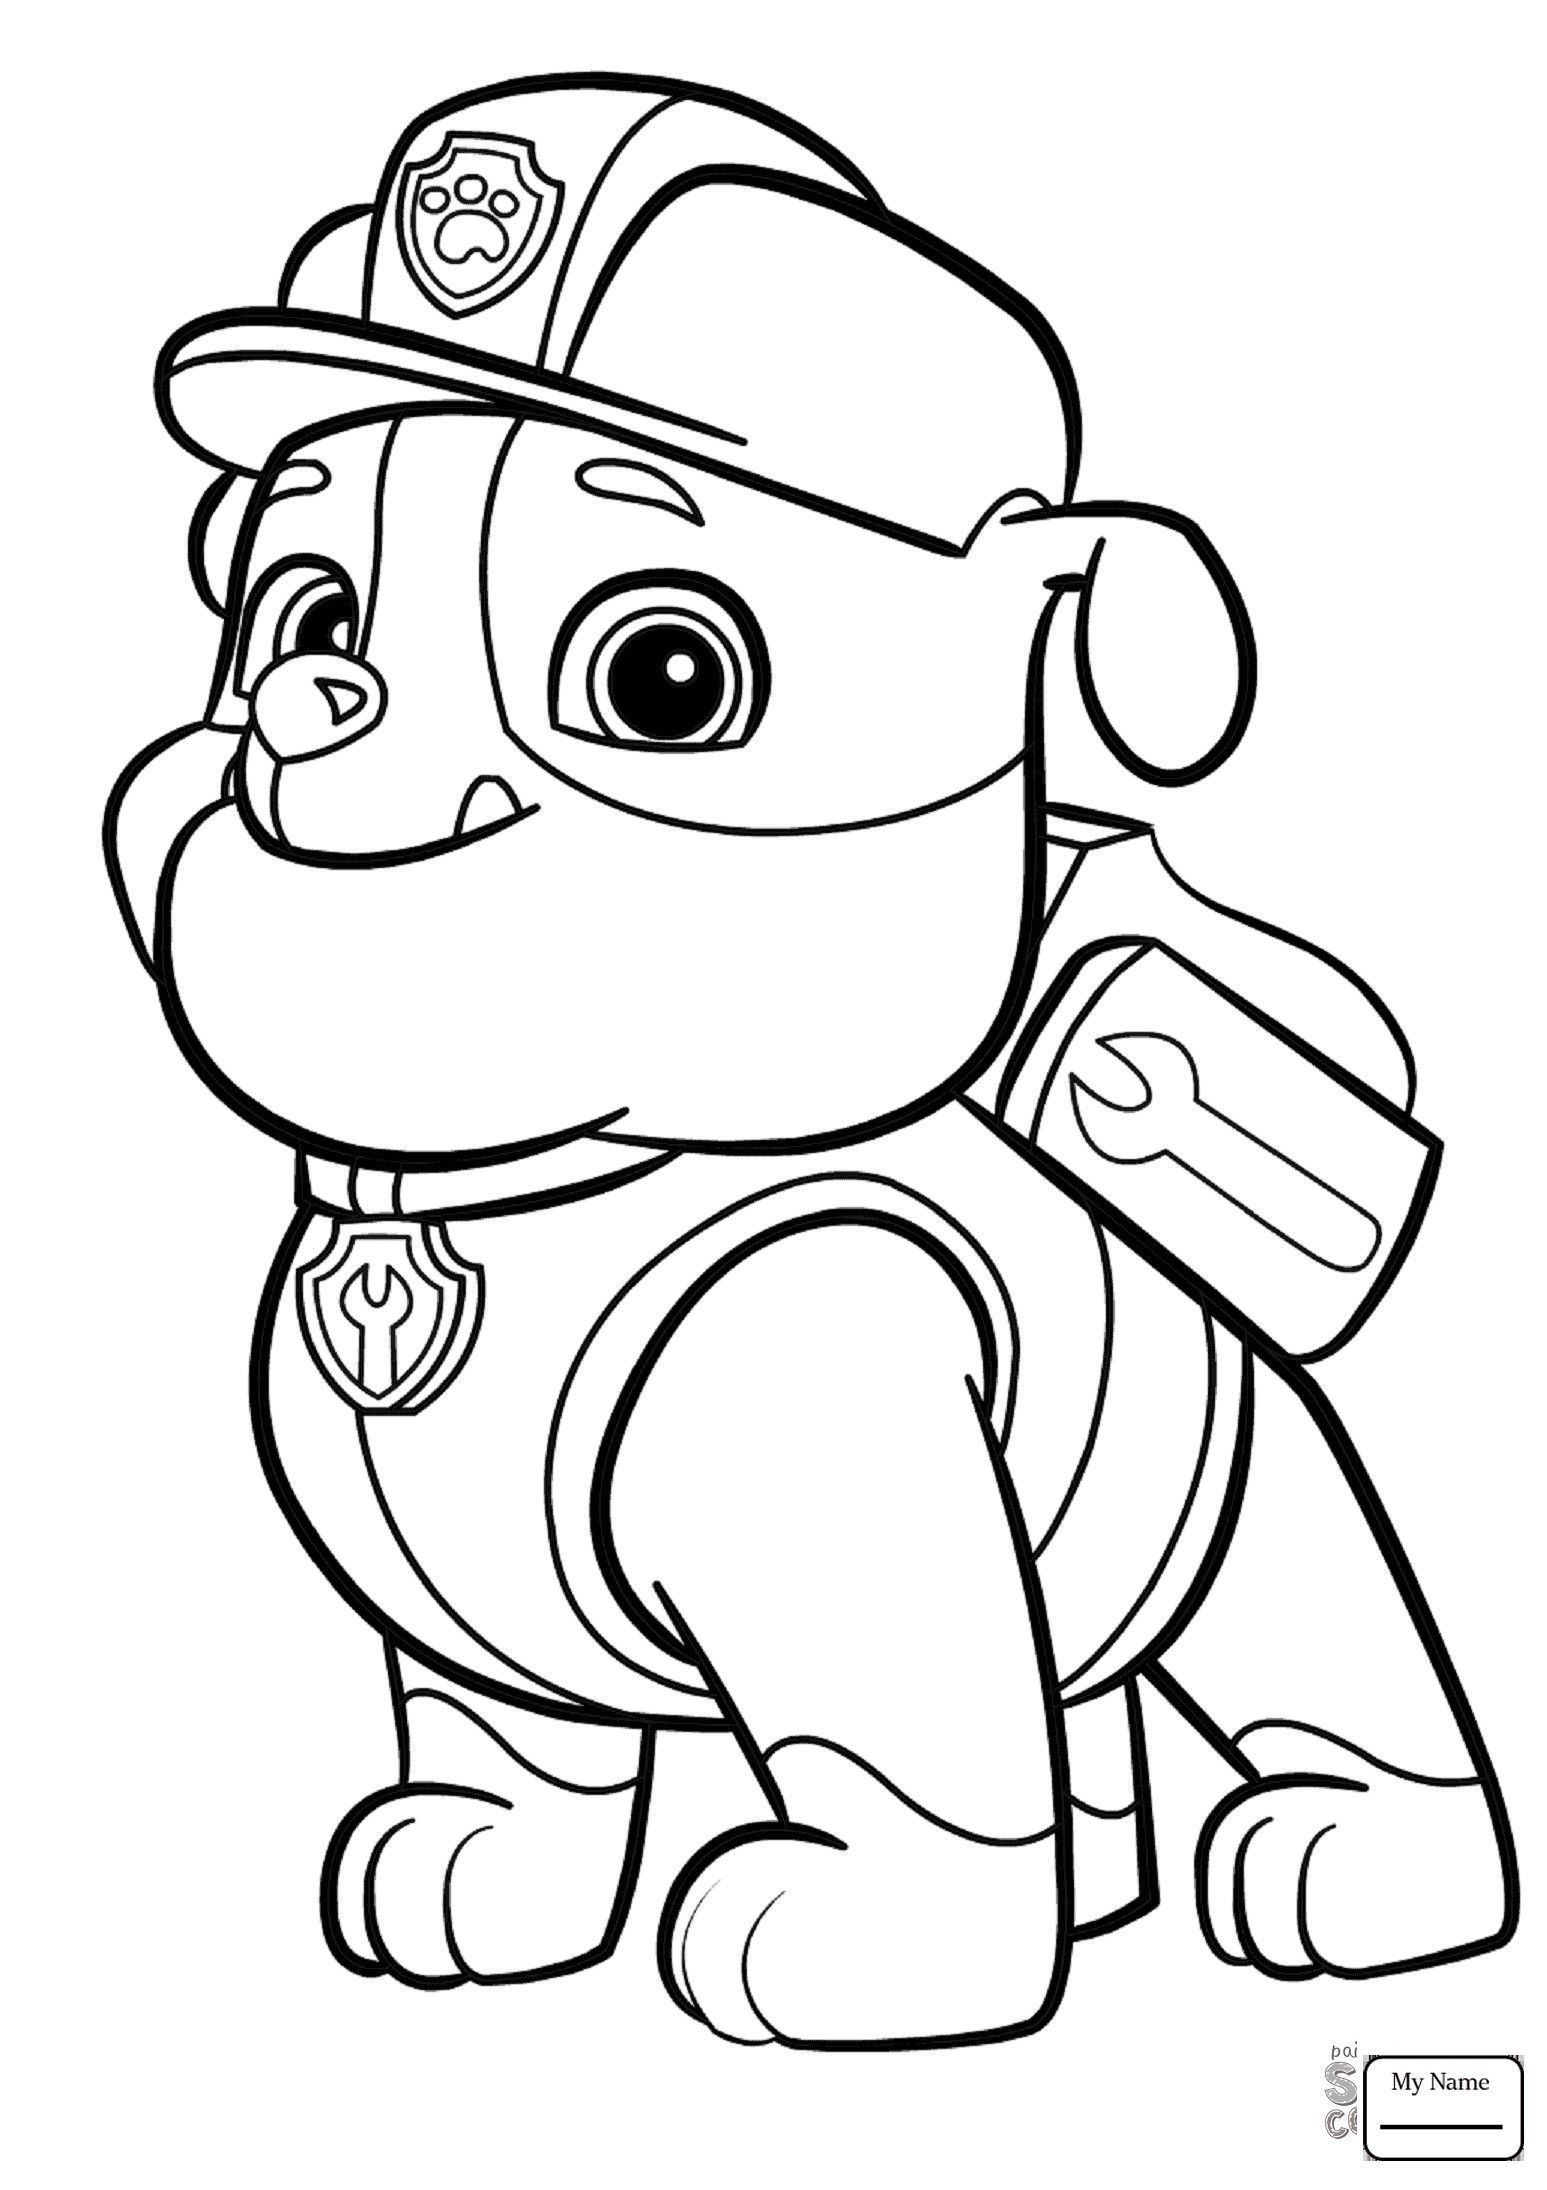 Chase Coloring Page Paw Patrol Youngandtae Com Paw Patrol Coloring Paw Patrol Coloring Pages Paw Patrol Printables